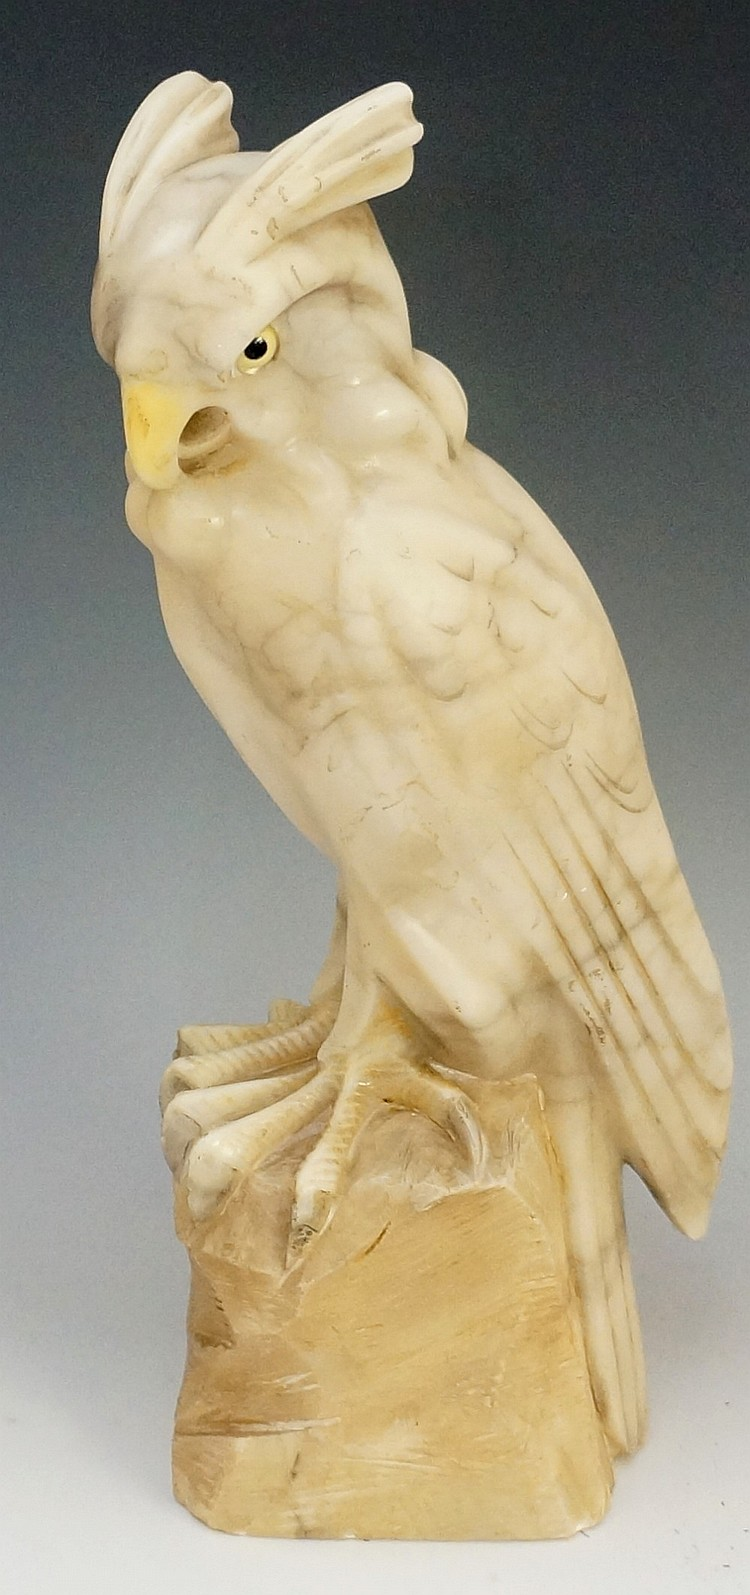 A carved alabaster bird of prey with glass eyes standing on a rocky base, 3